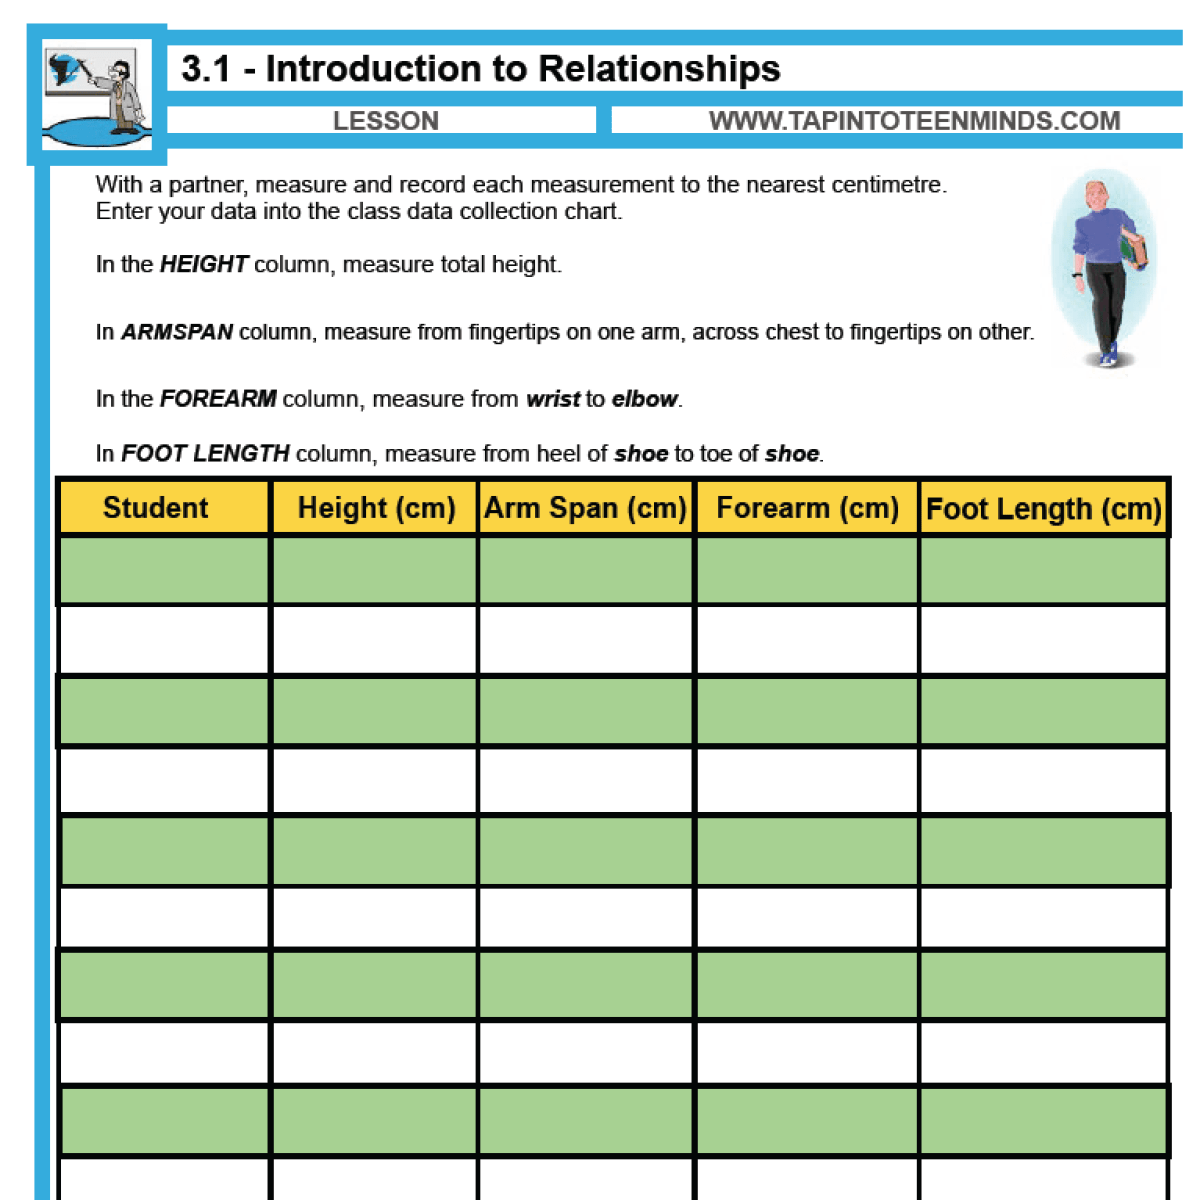 3.1 - Introduction to Relationships